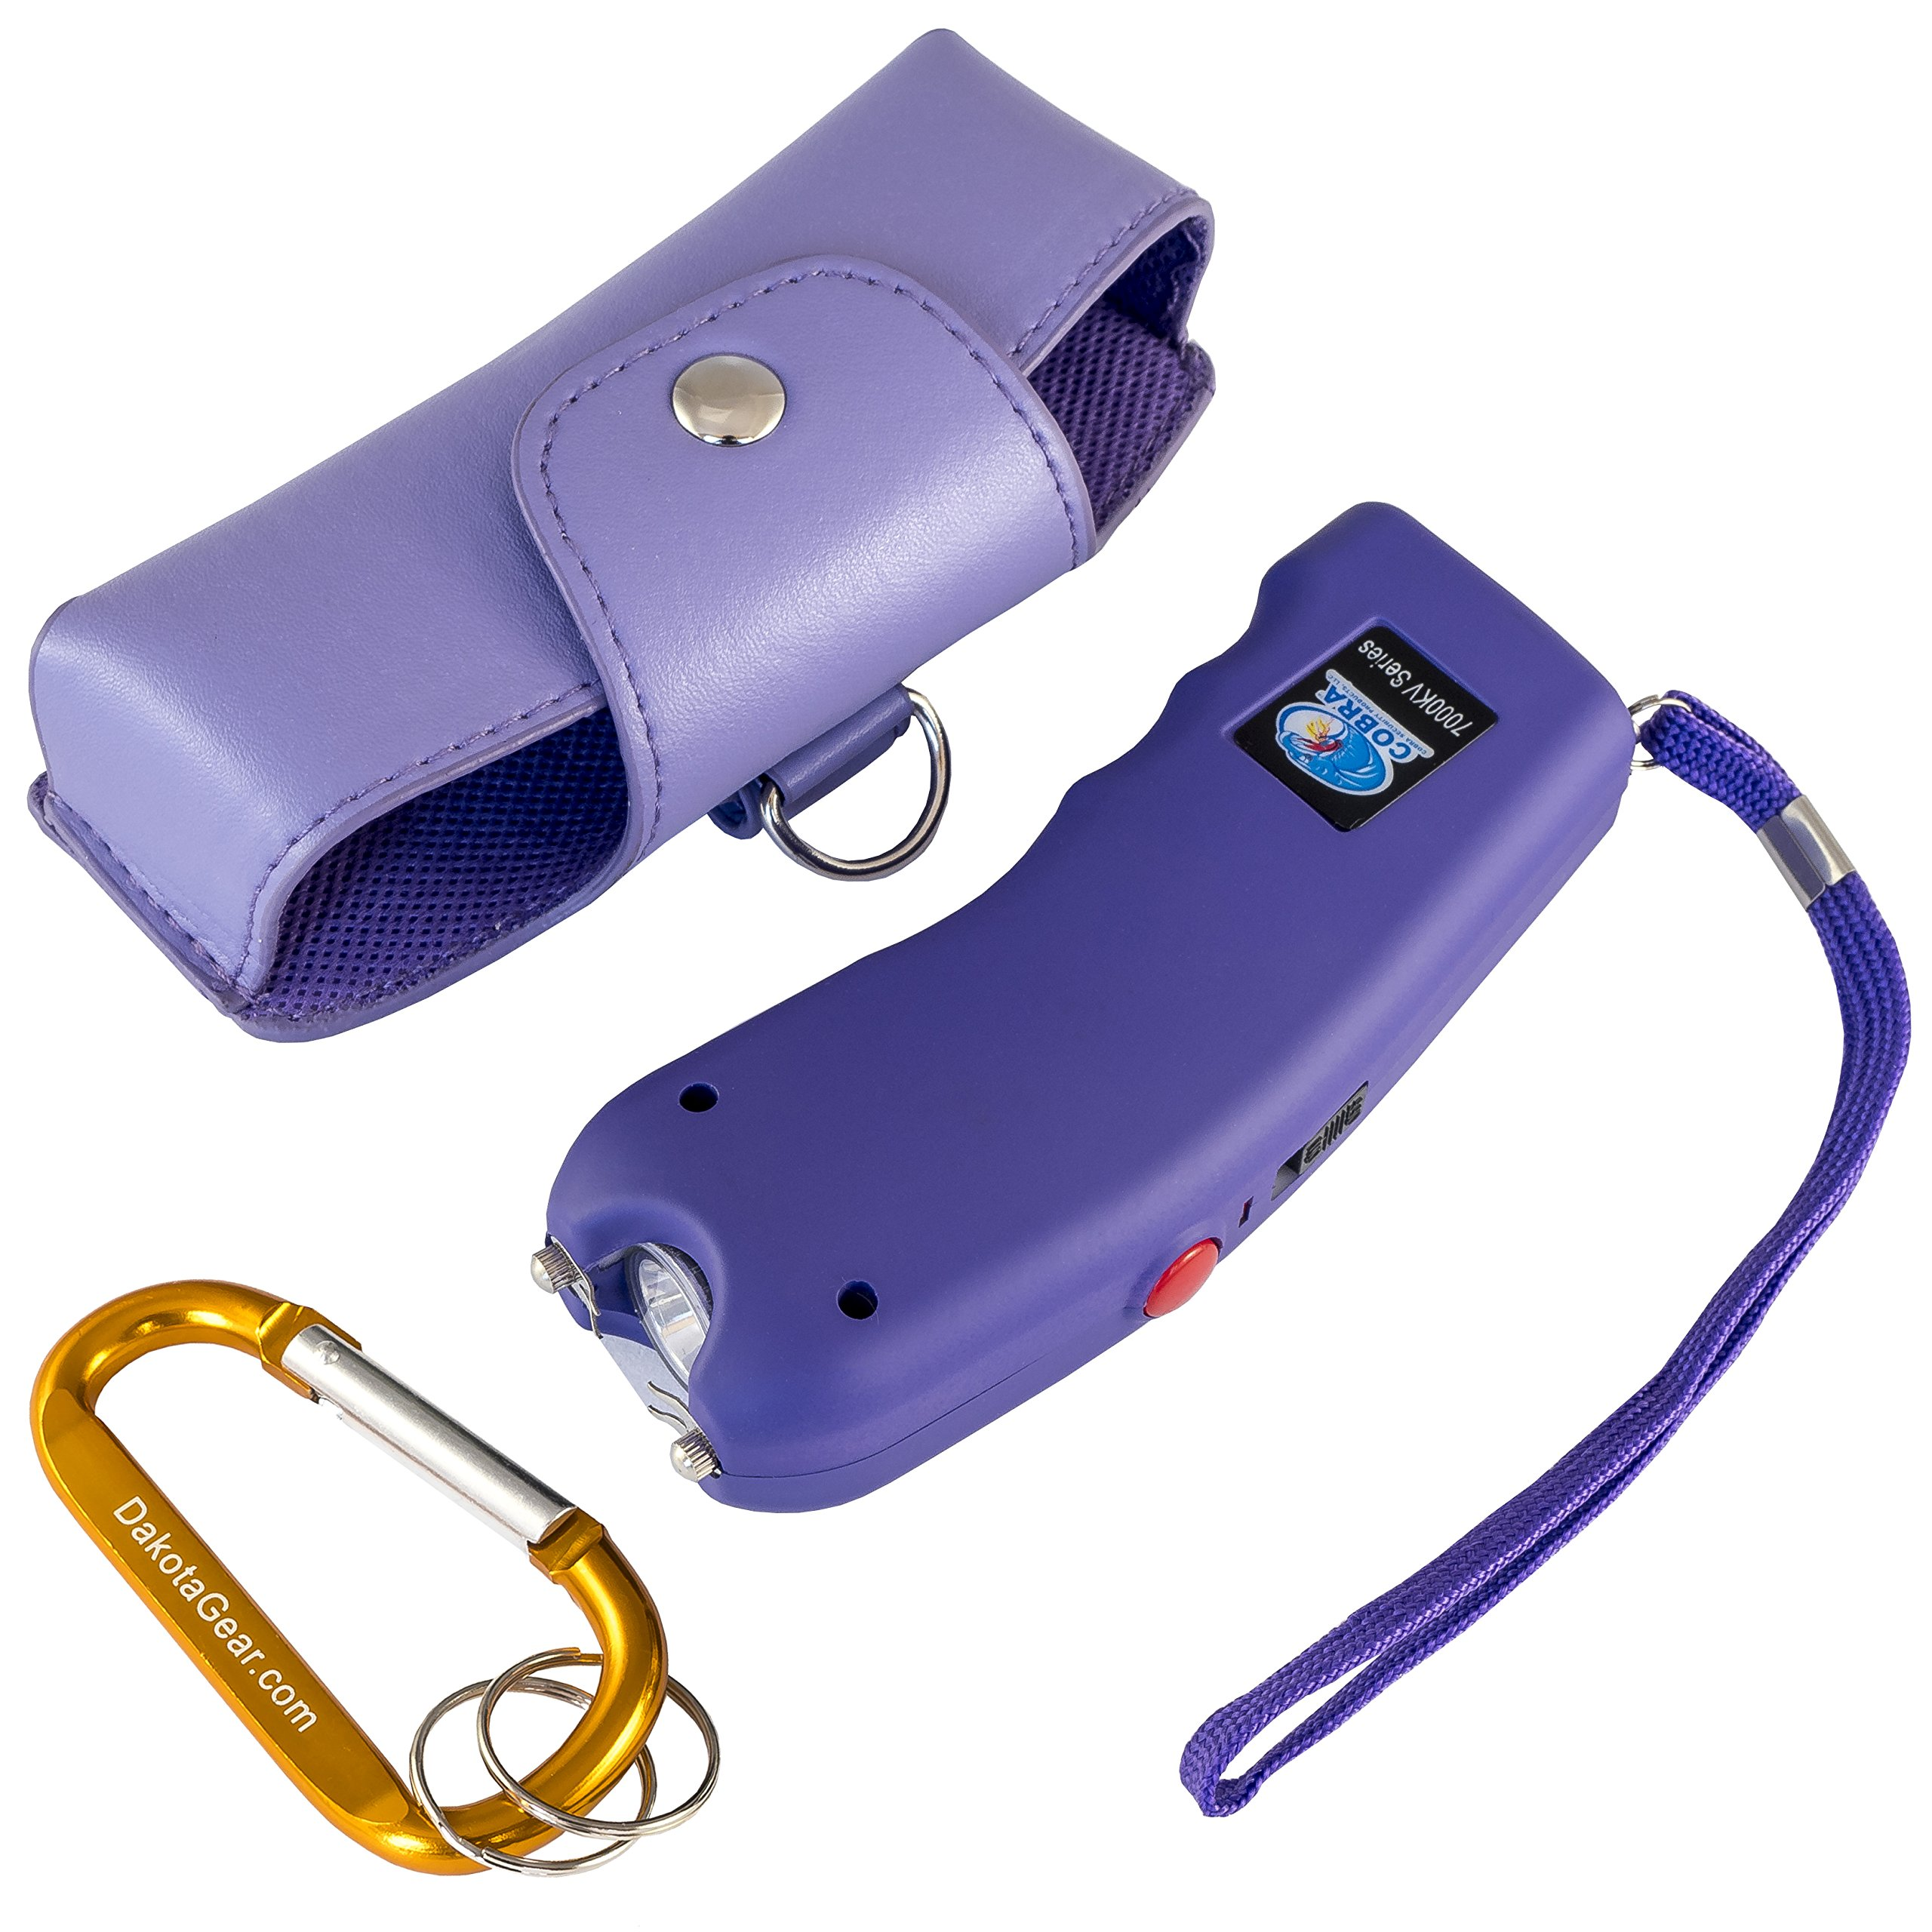 Stun Gun w/Flashlight, Panic Alarm, Rechargeable Internal Battery, Safety Pin, Wrist Strap, Carabiner & Clip-on Carry Case. Includes Quick Set-up and ''How To'' Guides. (Protective Purple)